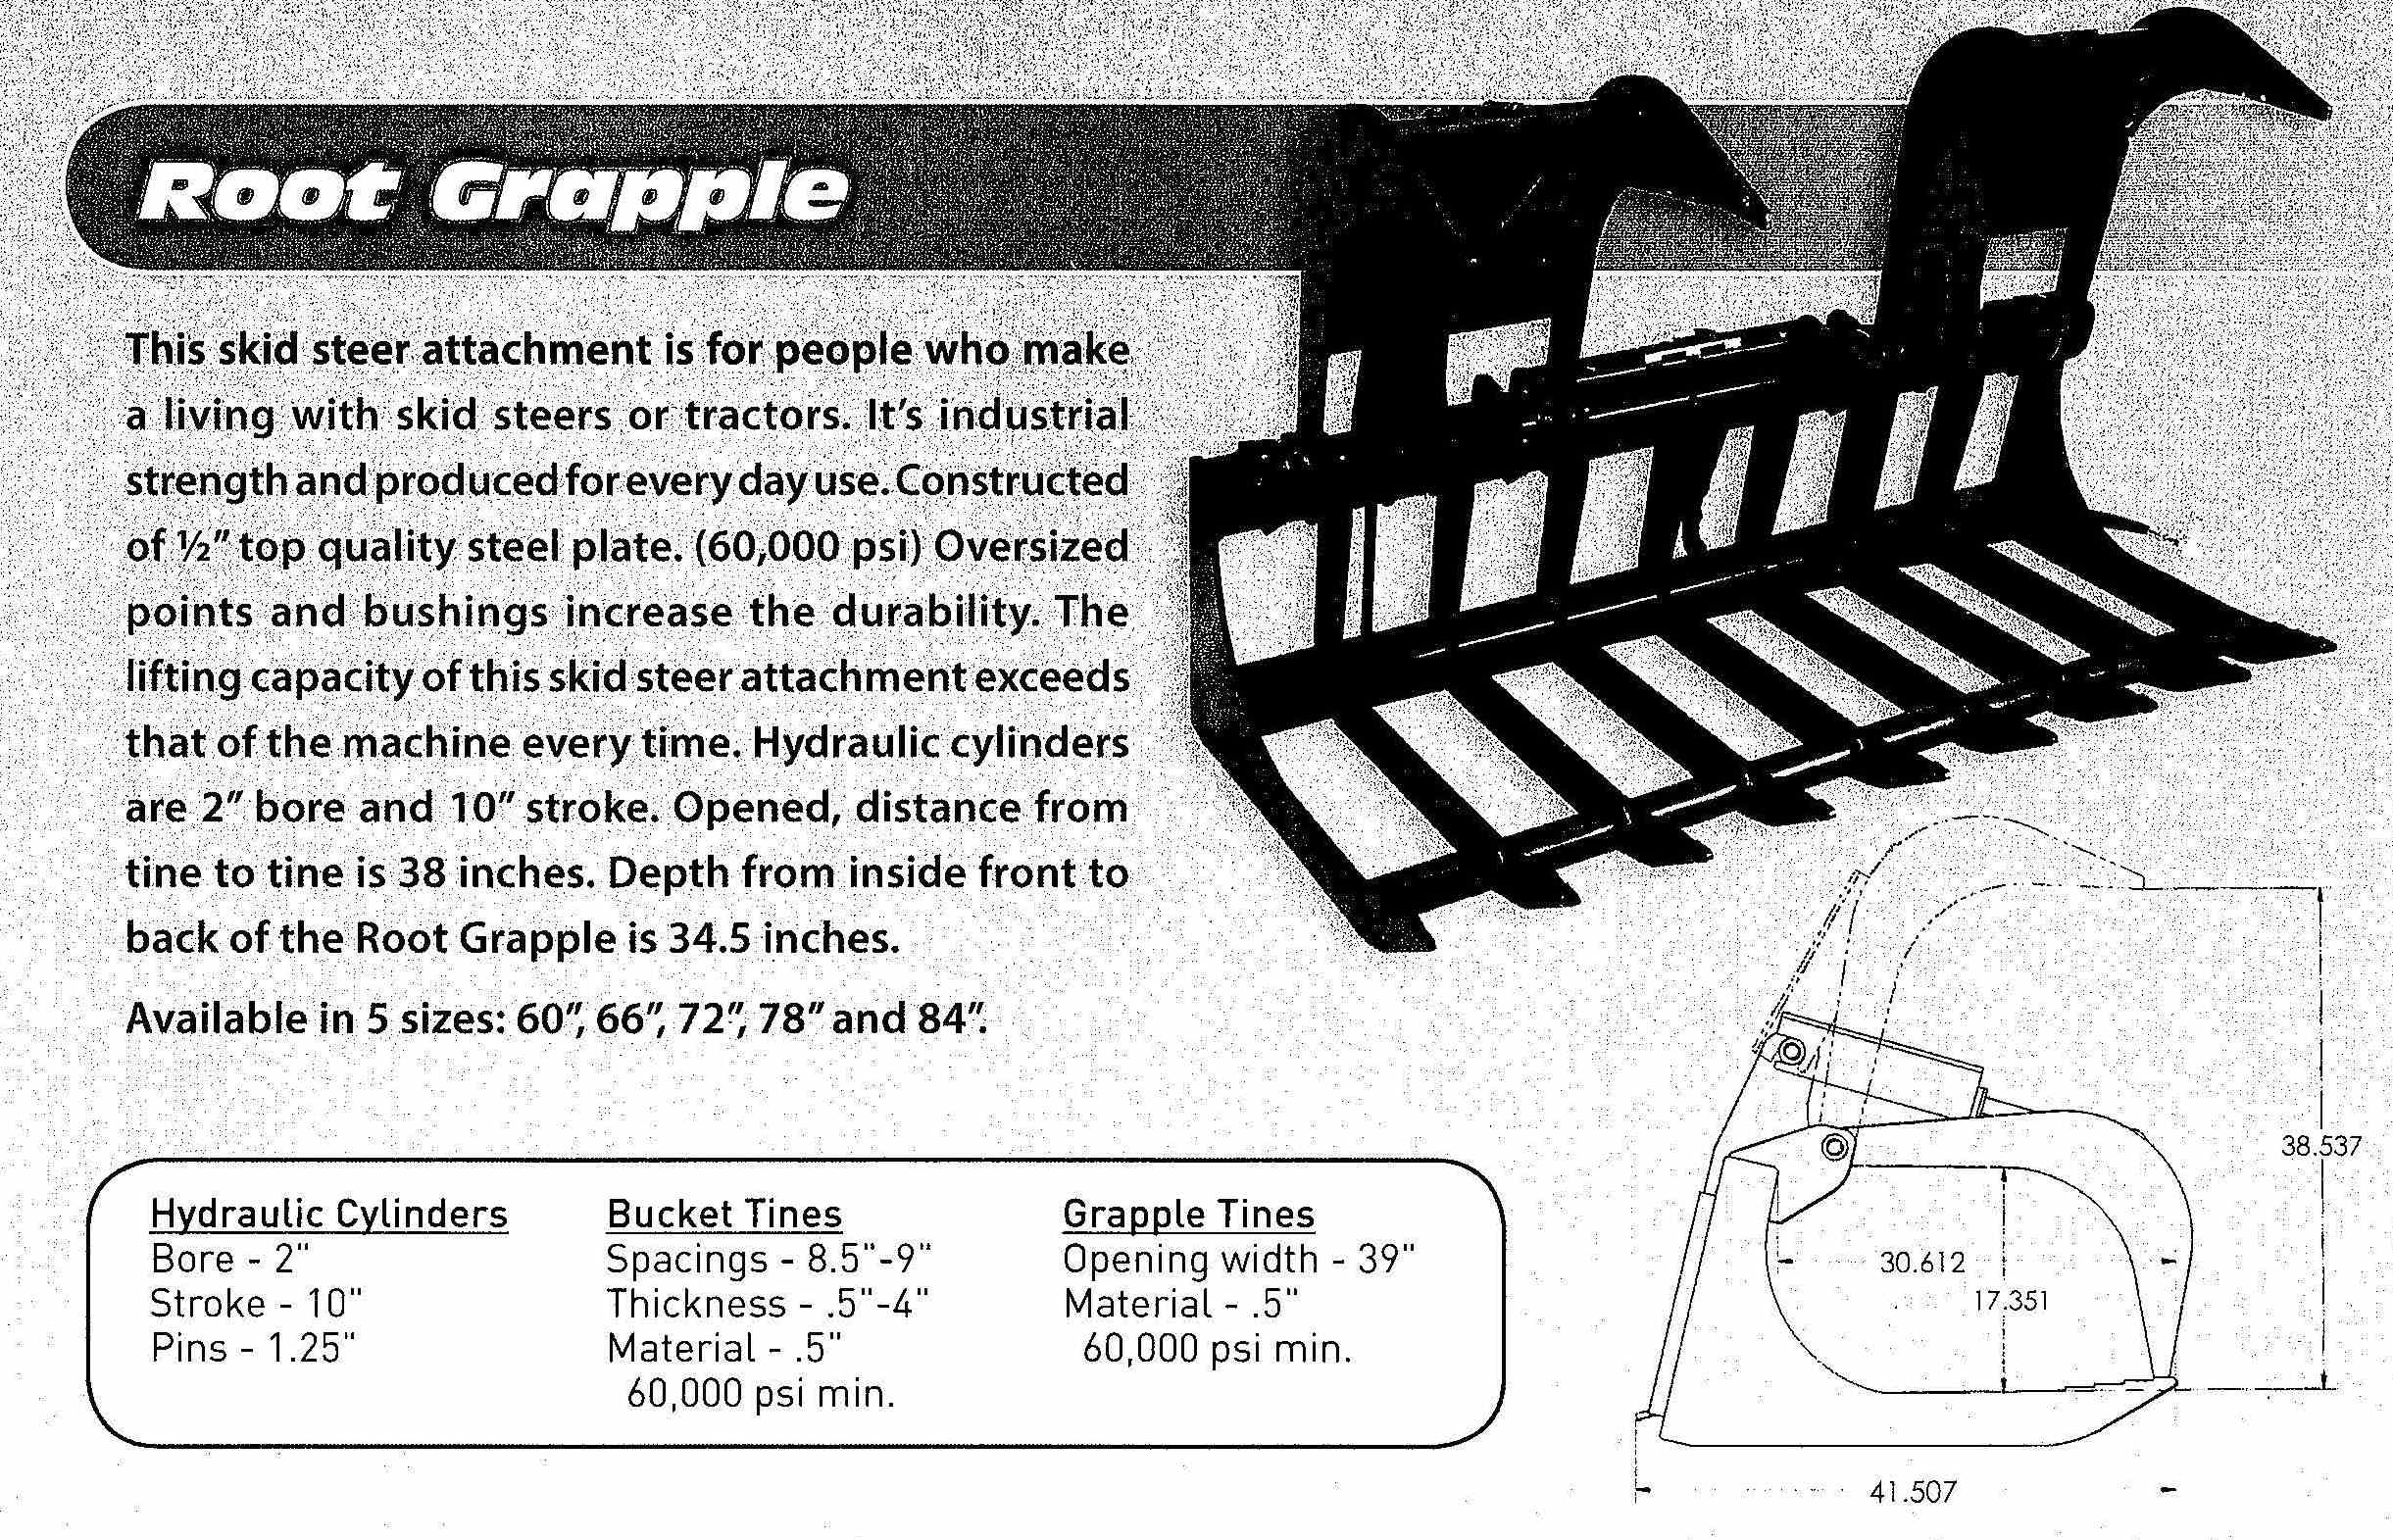 Standard Root Grapple For Skid Loaders Up To 75 HP